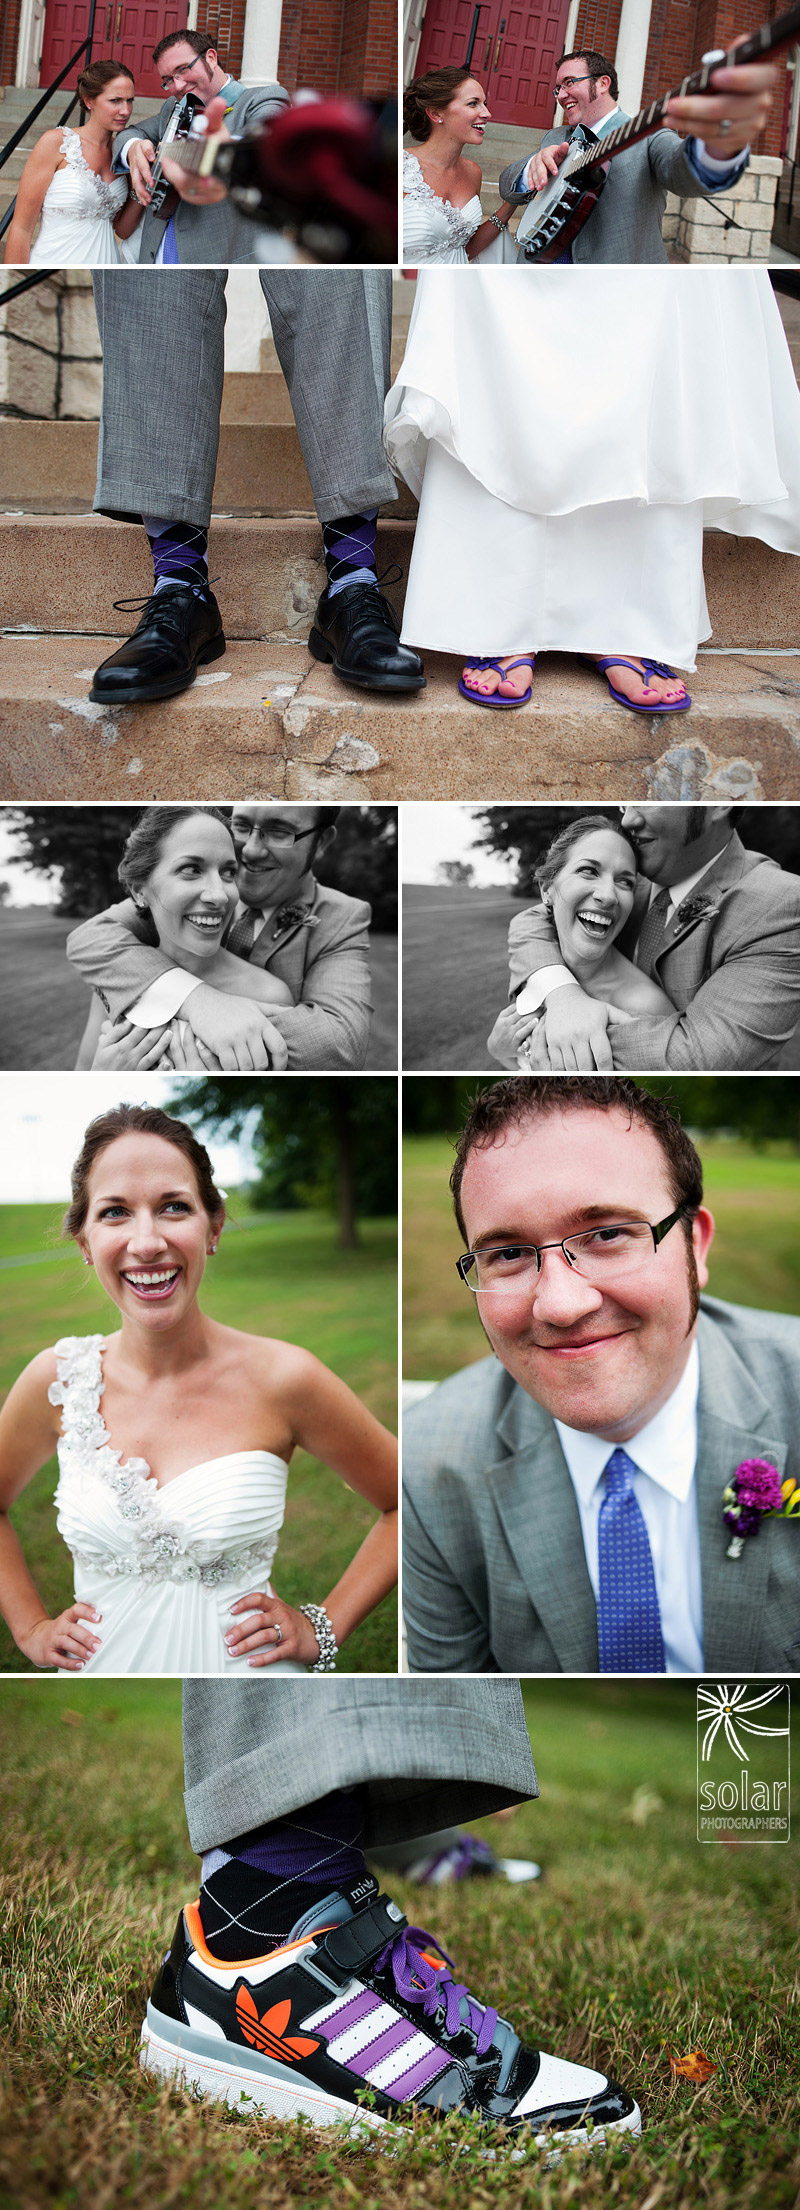 Awesome bride and groom portraits.